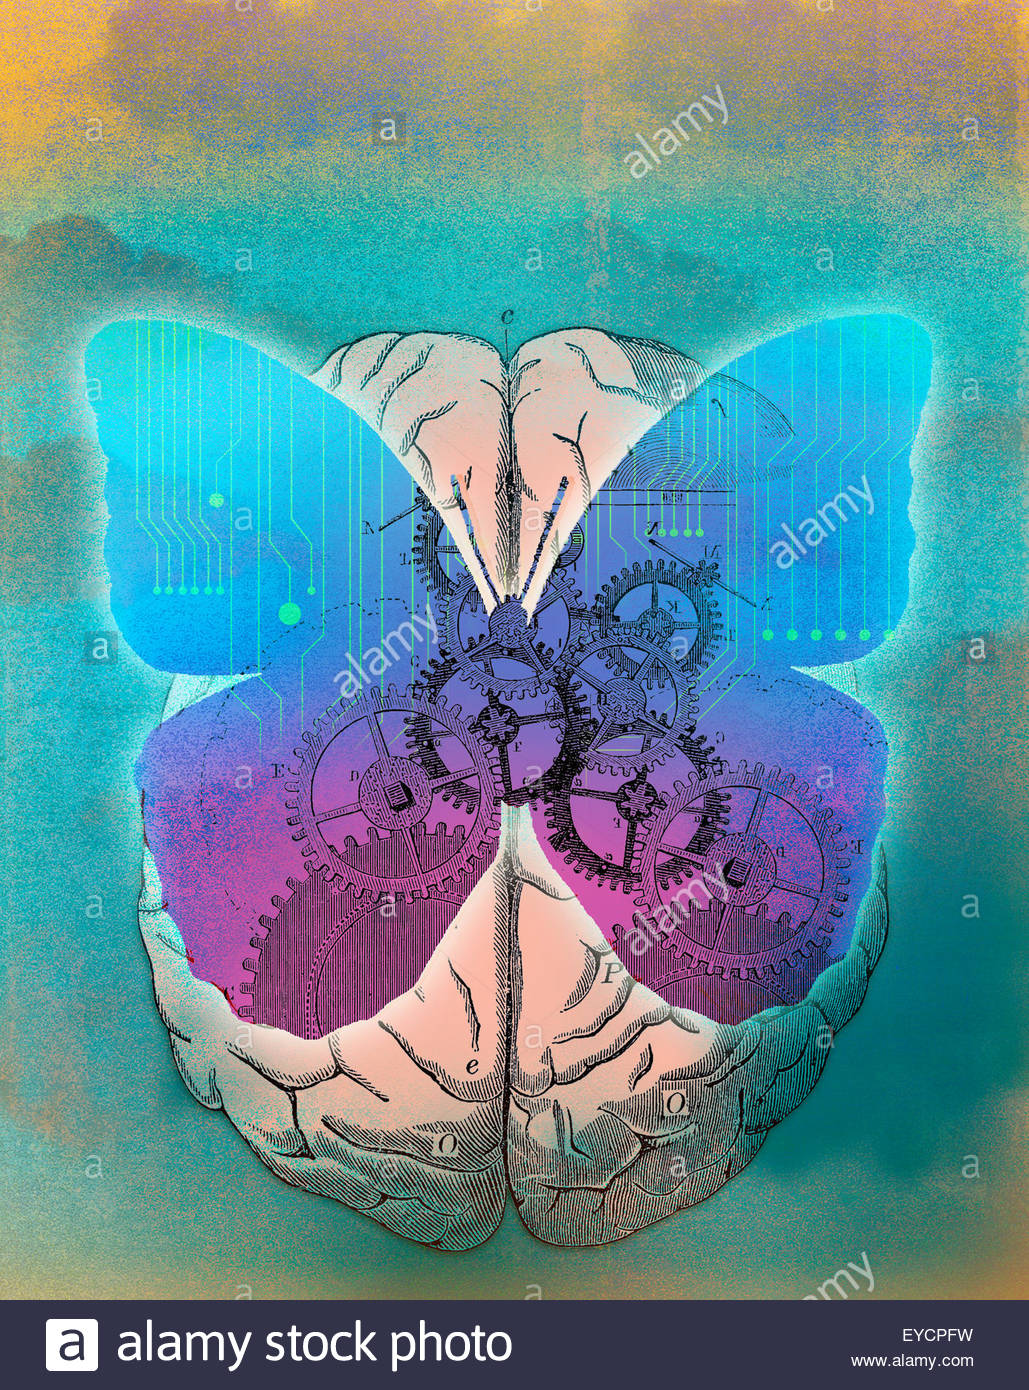 Butterfly with cogs and circuit board on top of human brain - Stock Image